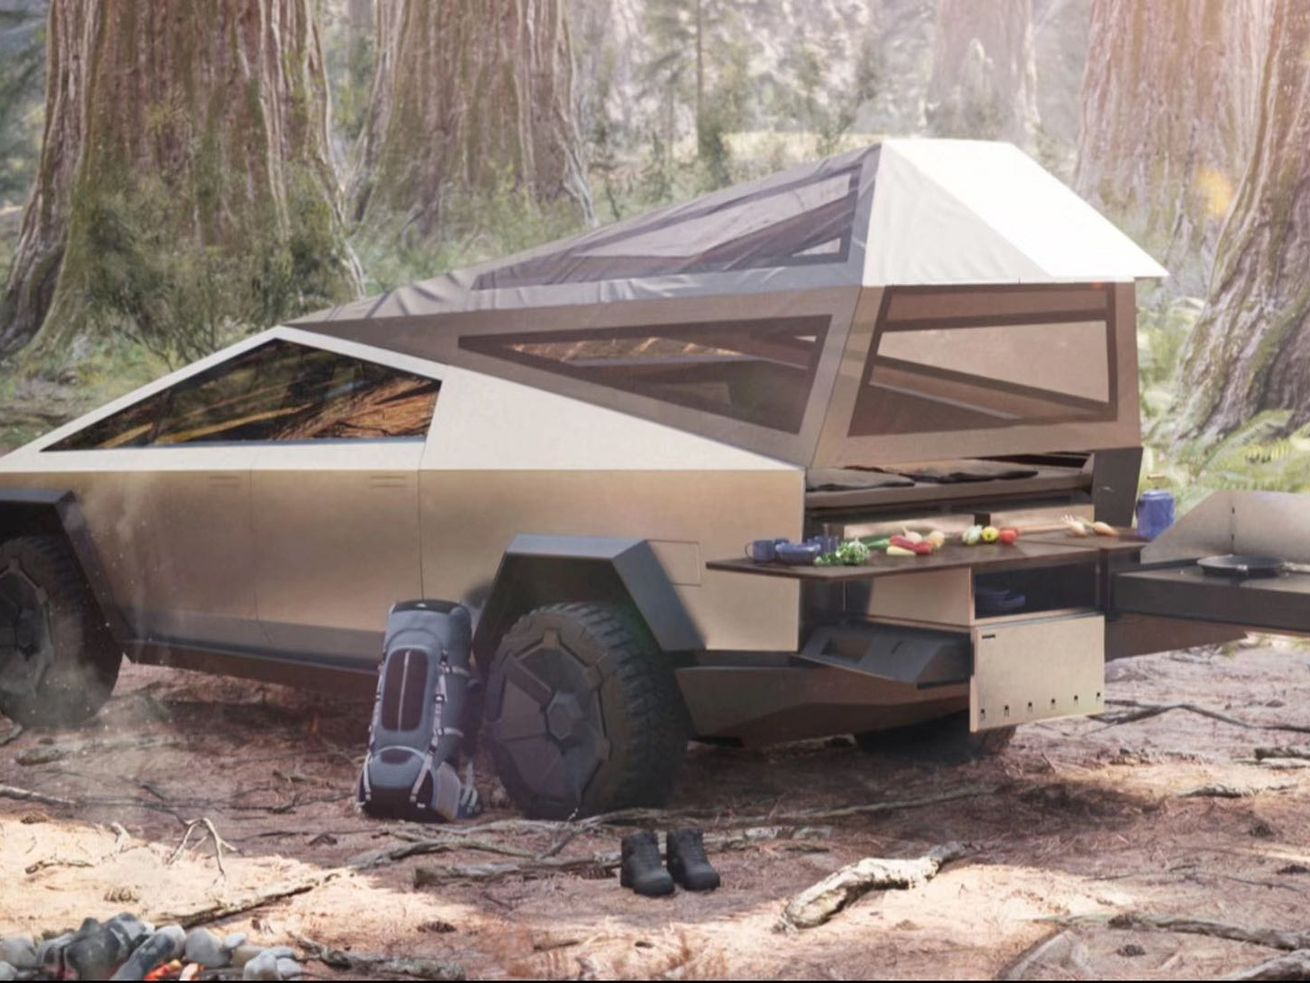 Tesla teases electric truck with pop-up camper mode